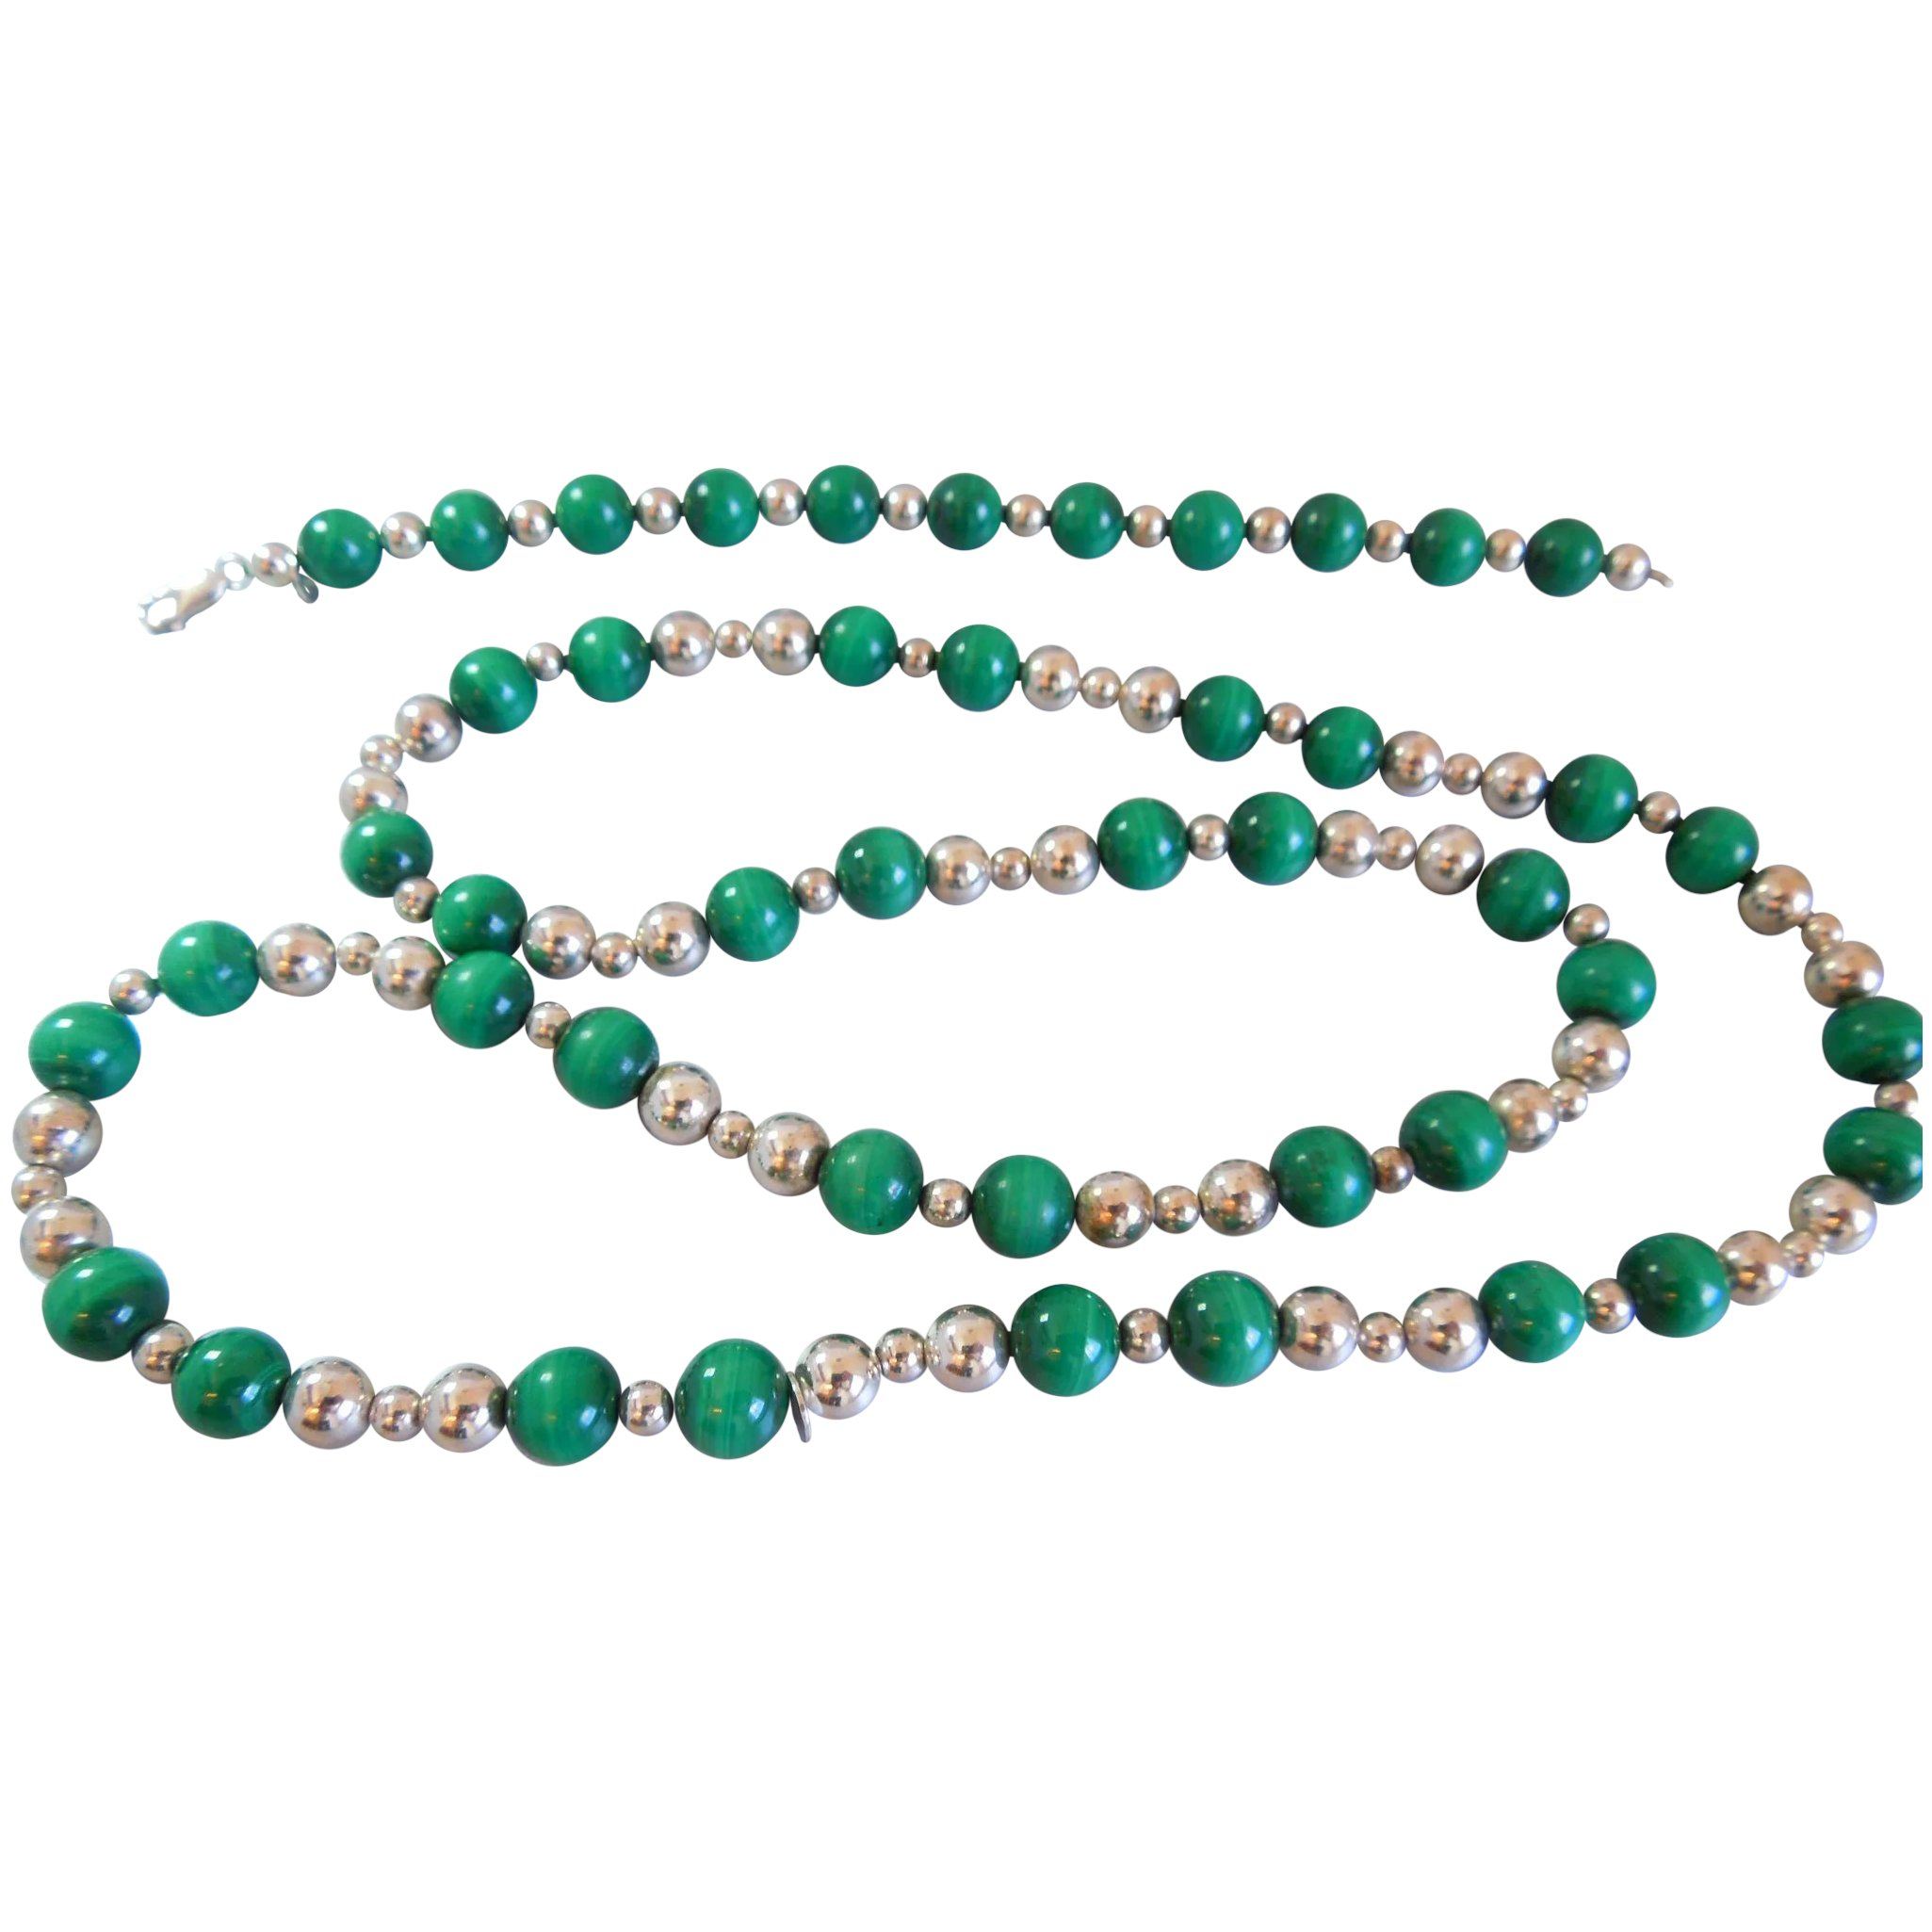 Vintage Authentic Tiffany Co Sterling Silver And Malachite Bead Merriman Antique And Design Ruby Lane